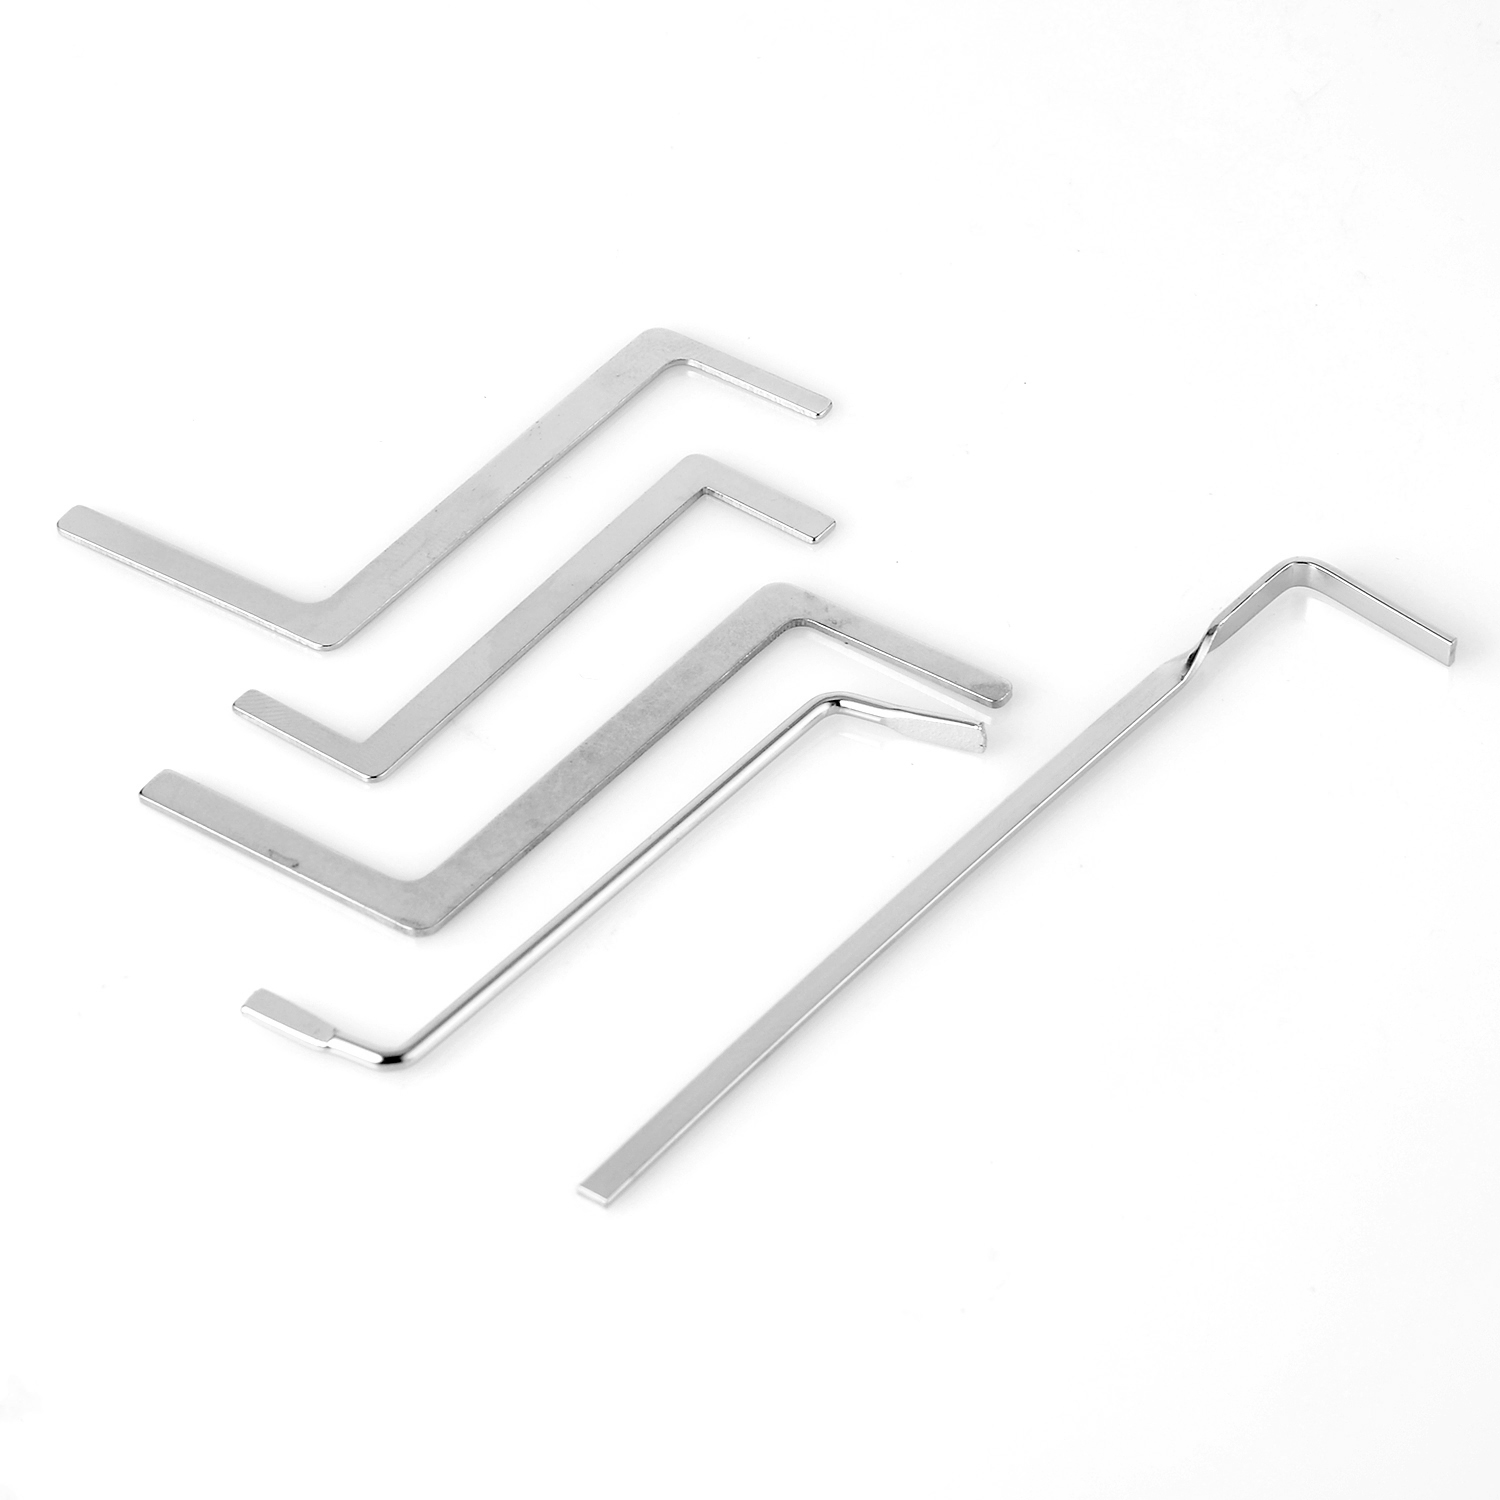 Hot!5 Pcs Locksmith Tools Multifunction Metal Tension Rod/Puch Rod Tubestension Wrench For Locksmith Supply P15 ...